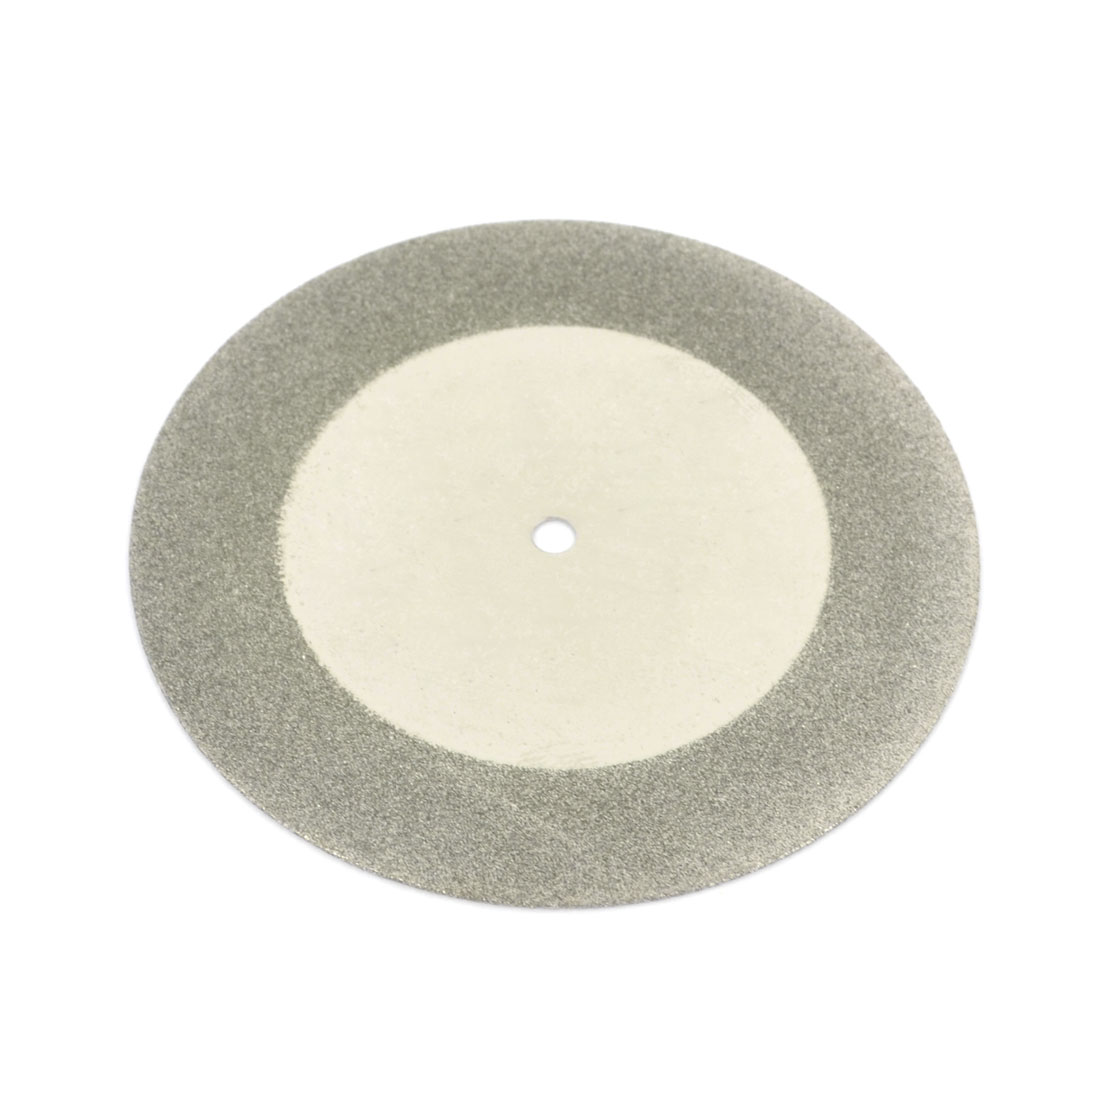 Silver Tone 60mm Dia Diamond Coated Glass Grinding Cutting Cut-off Wheel Disc